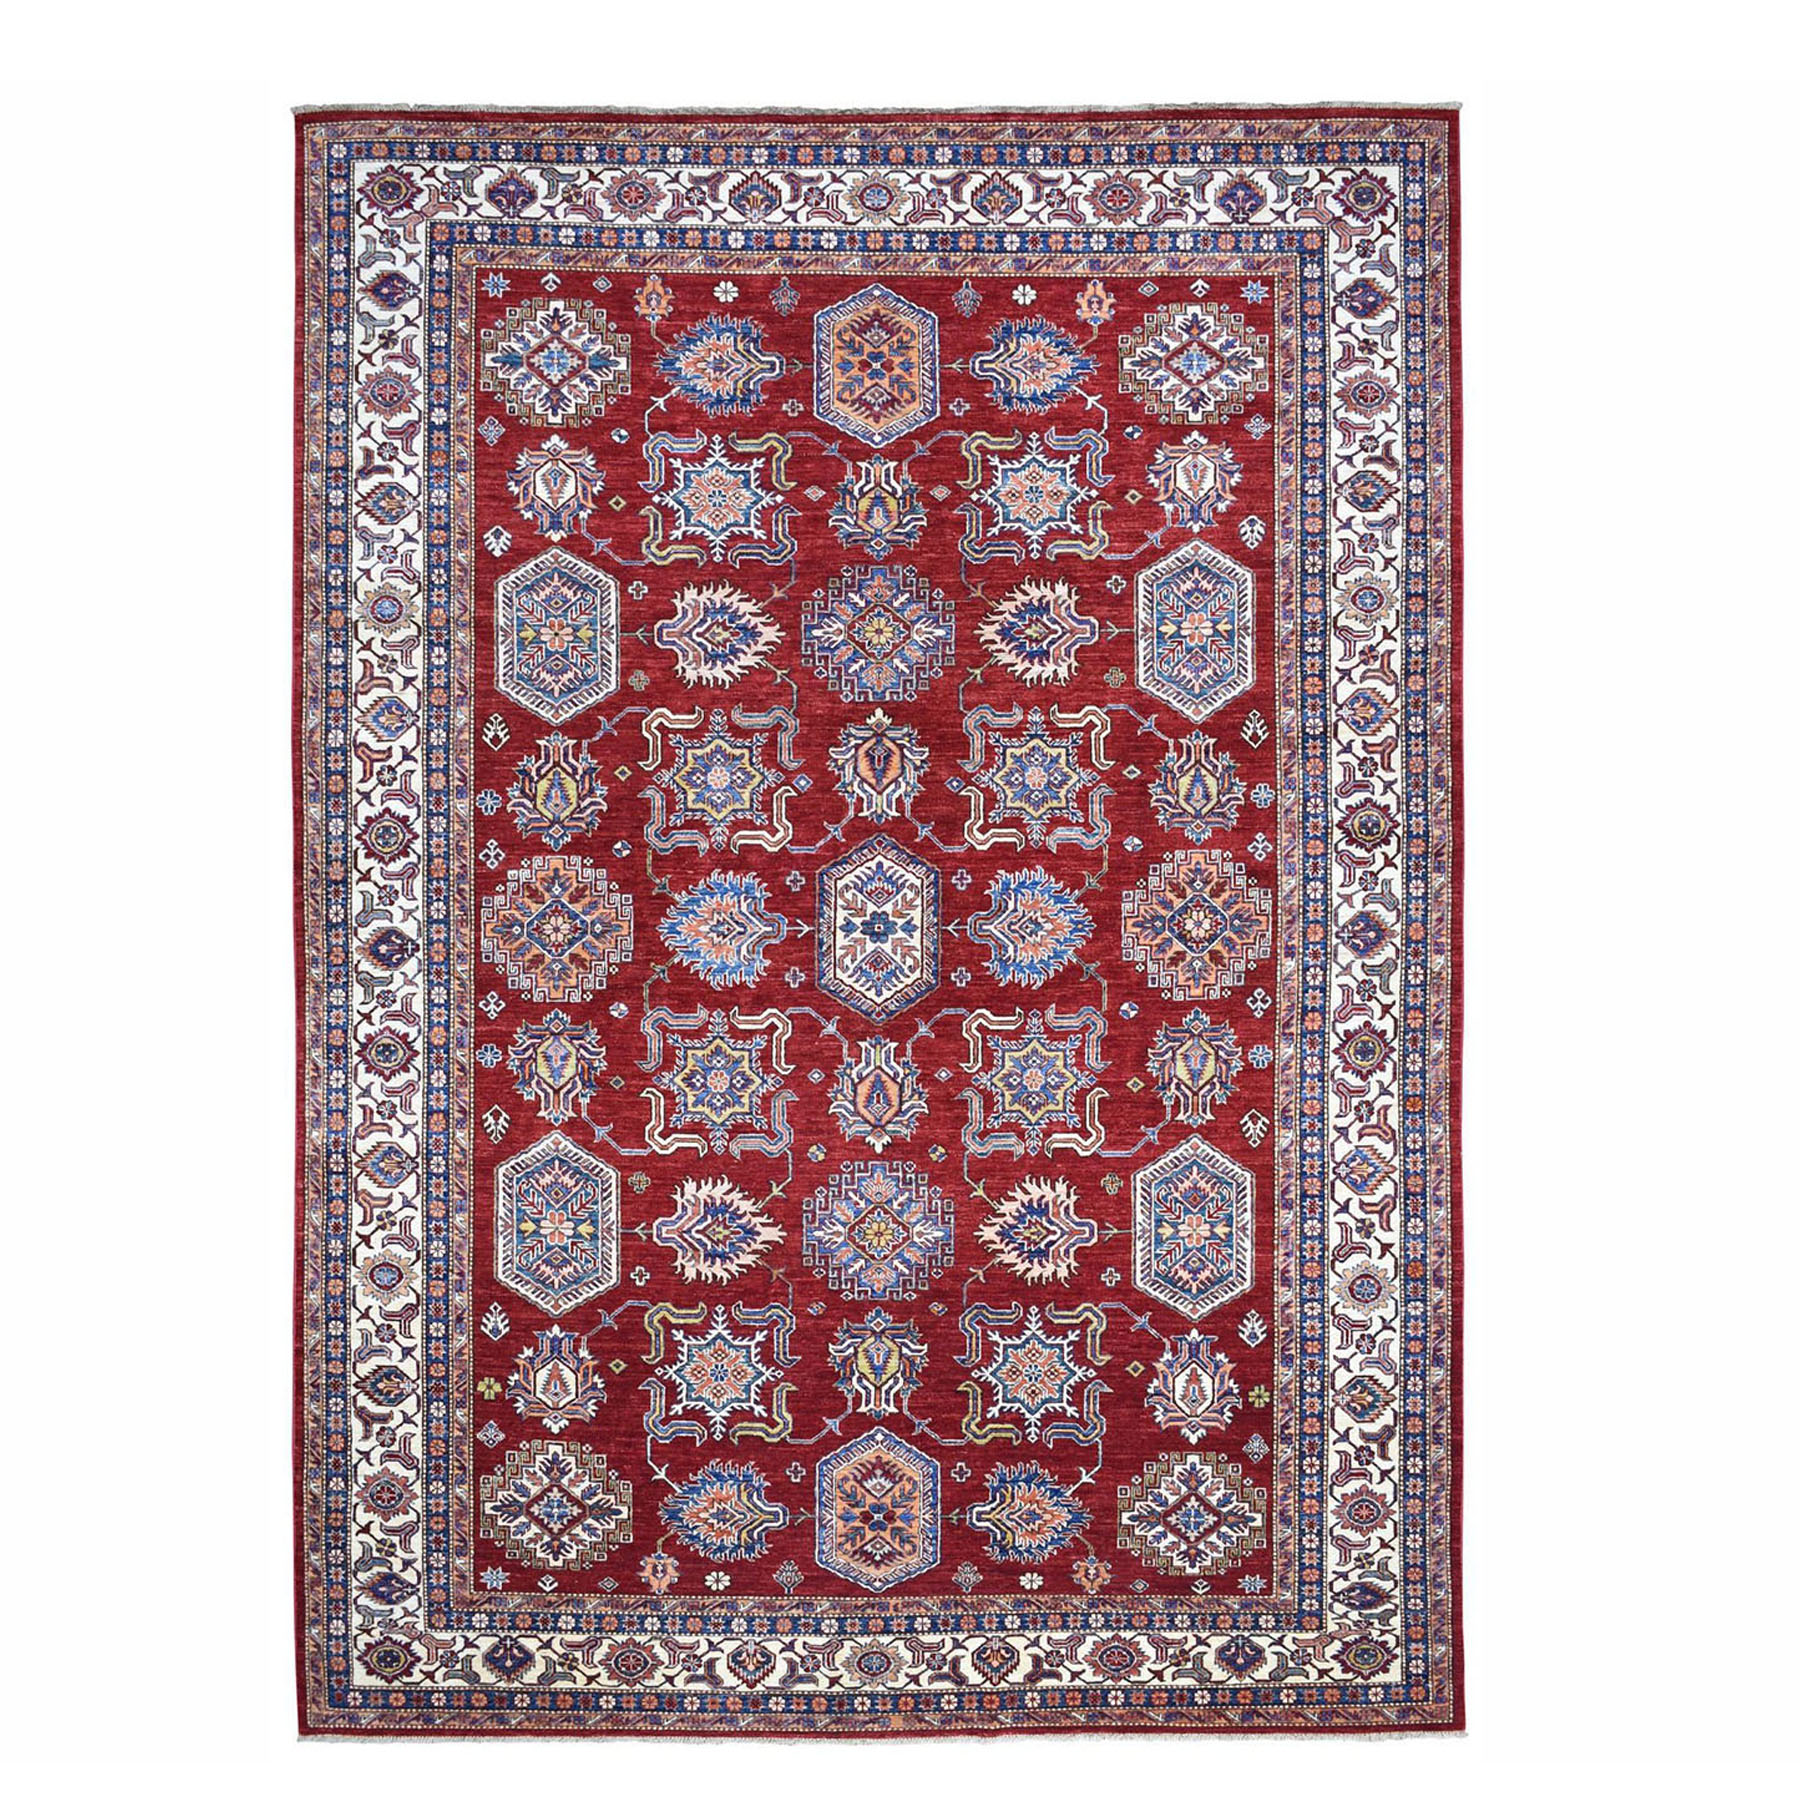 "8'10""x11'9"" Red Super Kazak Pure Wool Geometric Design Hand Woven Oriental Rug"